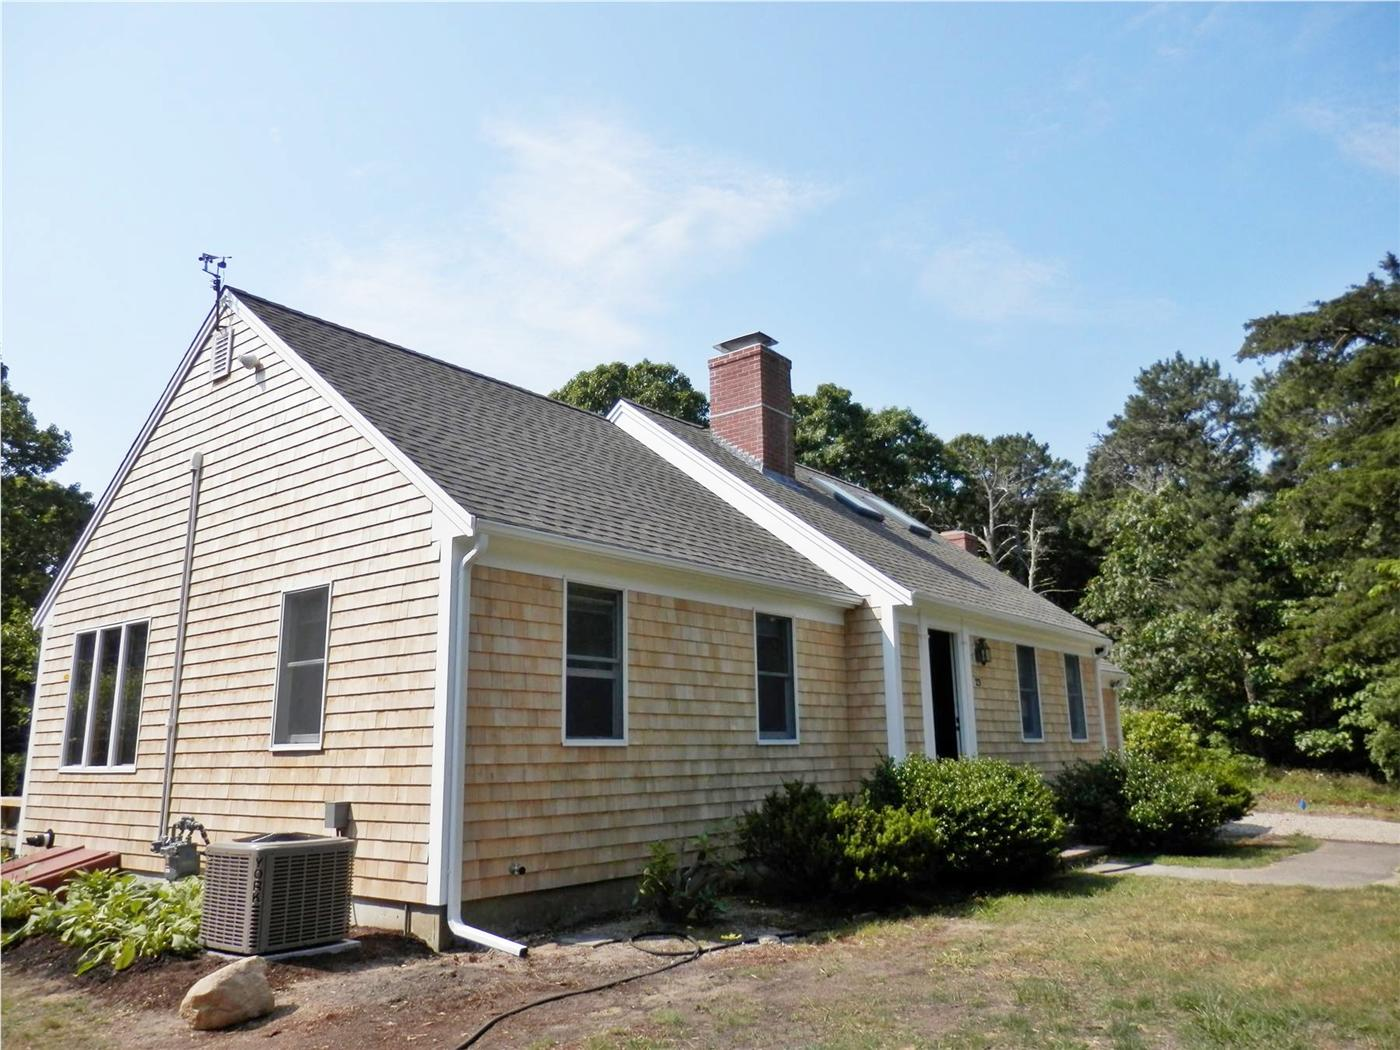 Orleans vacation rental home in cape cod ma 02653 id 22507 for Cabin cape cod